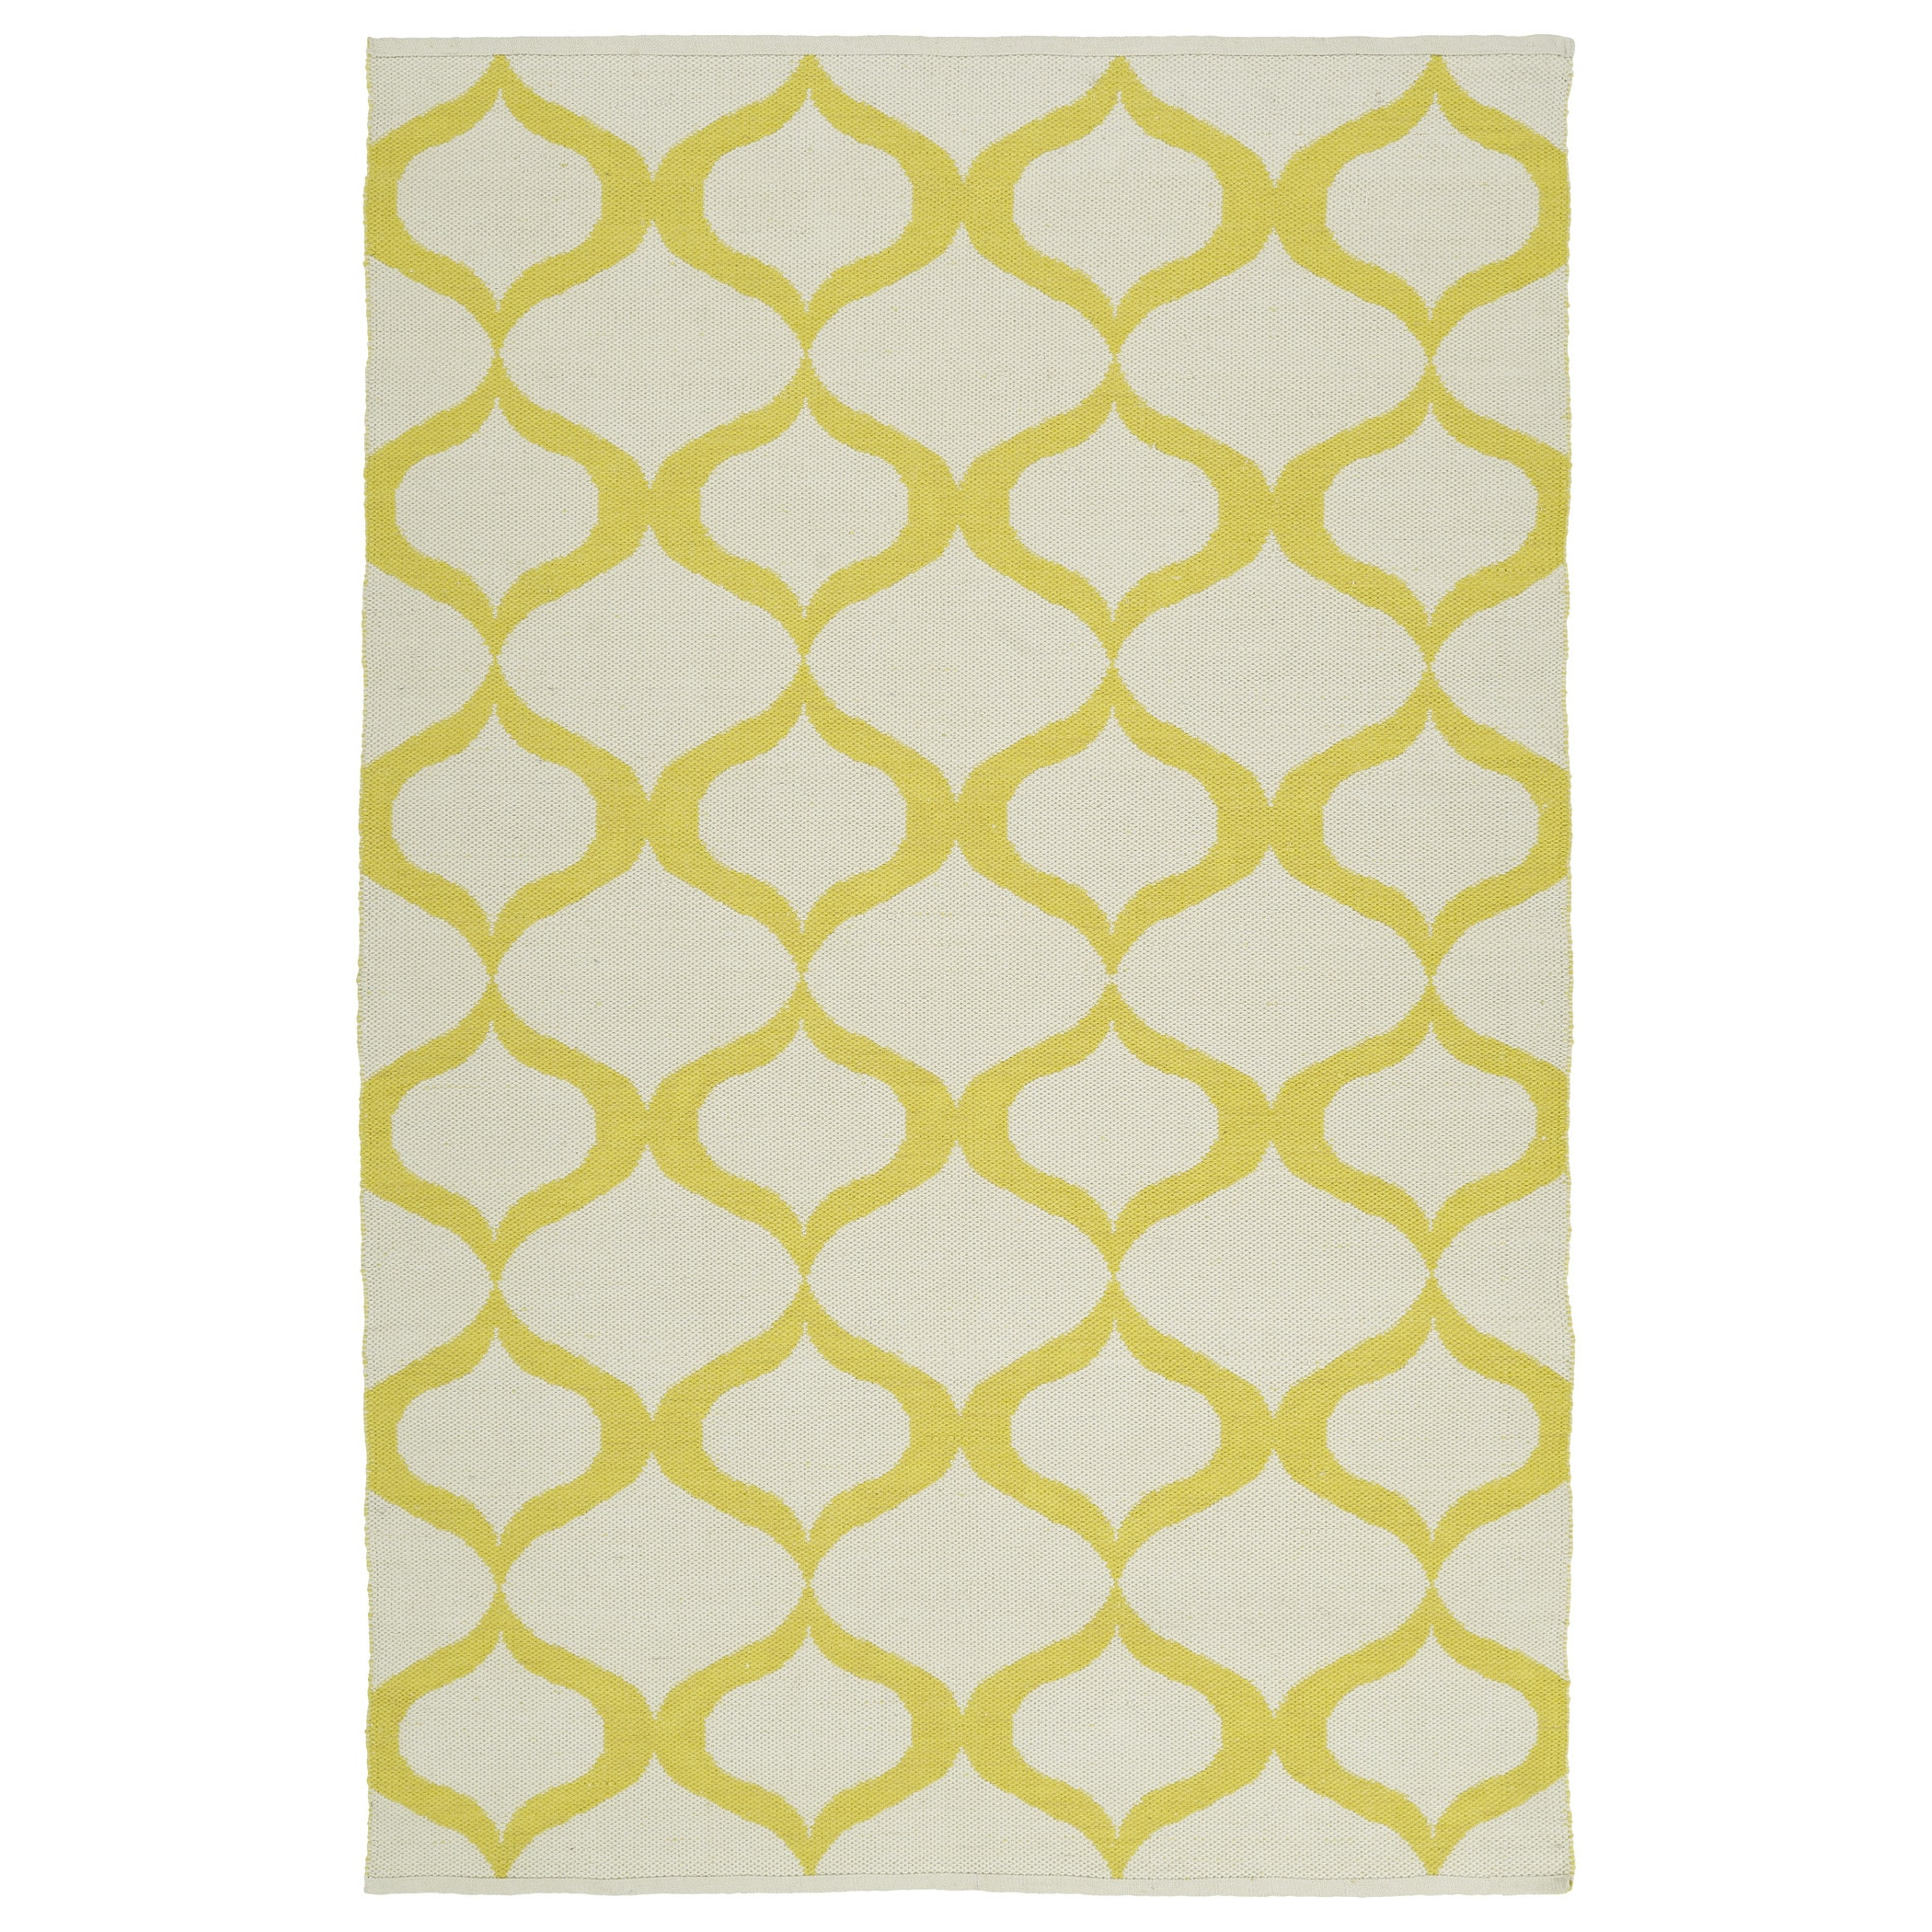 Indoor Outdoor Laguna Ivory And Yellow Geo Flat Weave Rug 8 X 10 Free Shipping Today 10200578